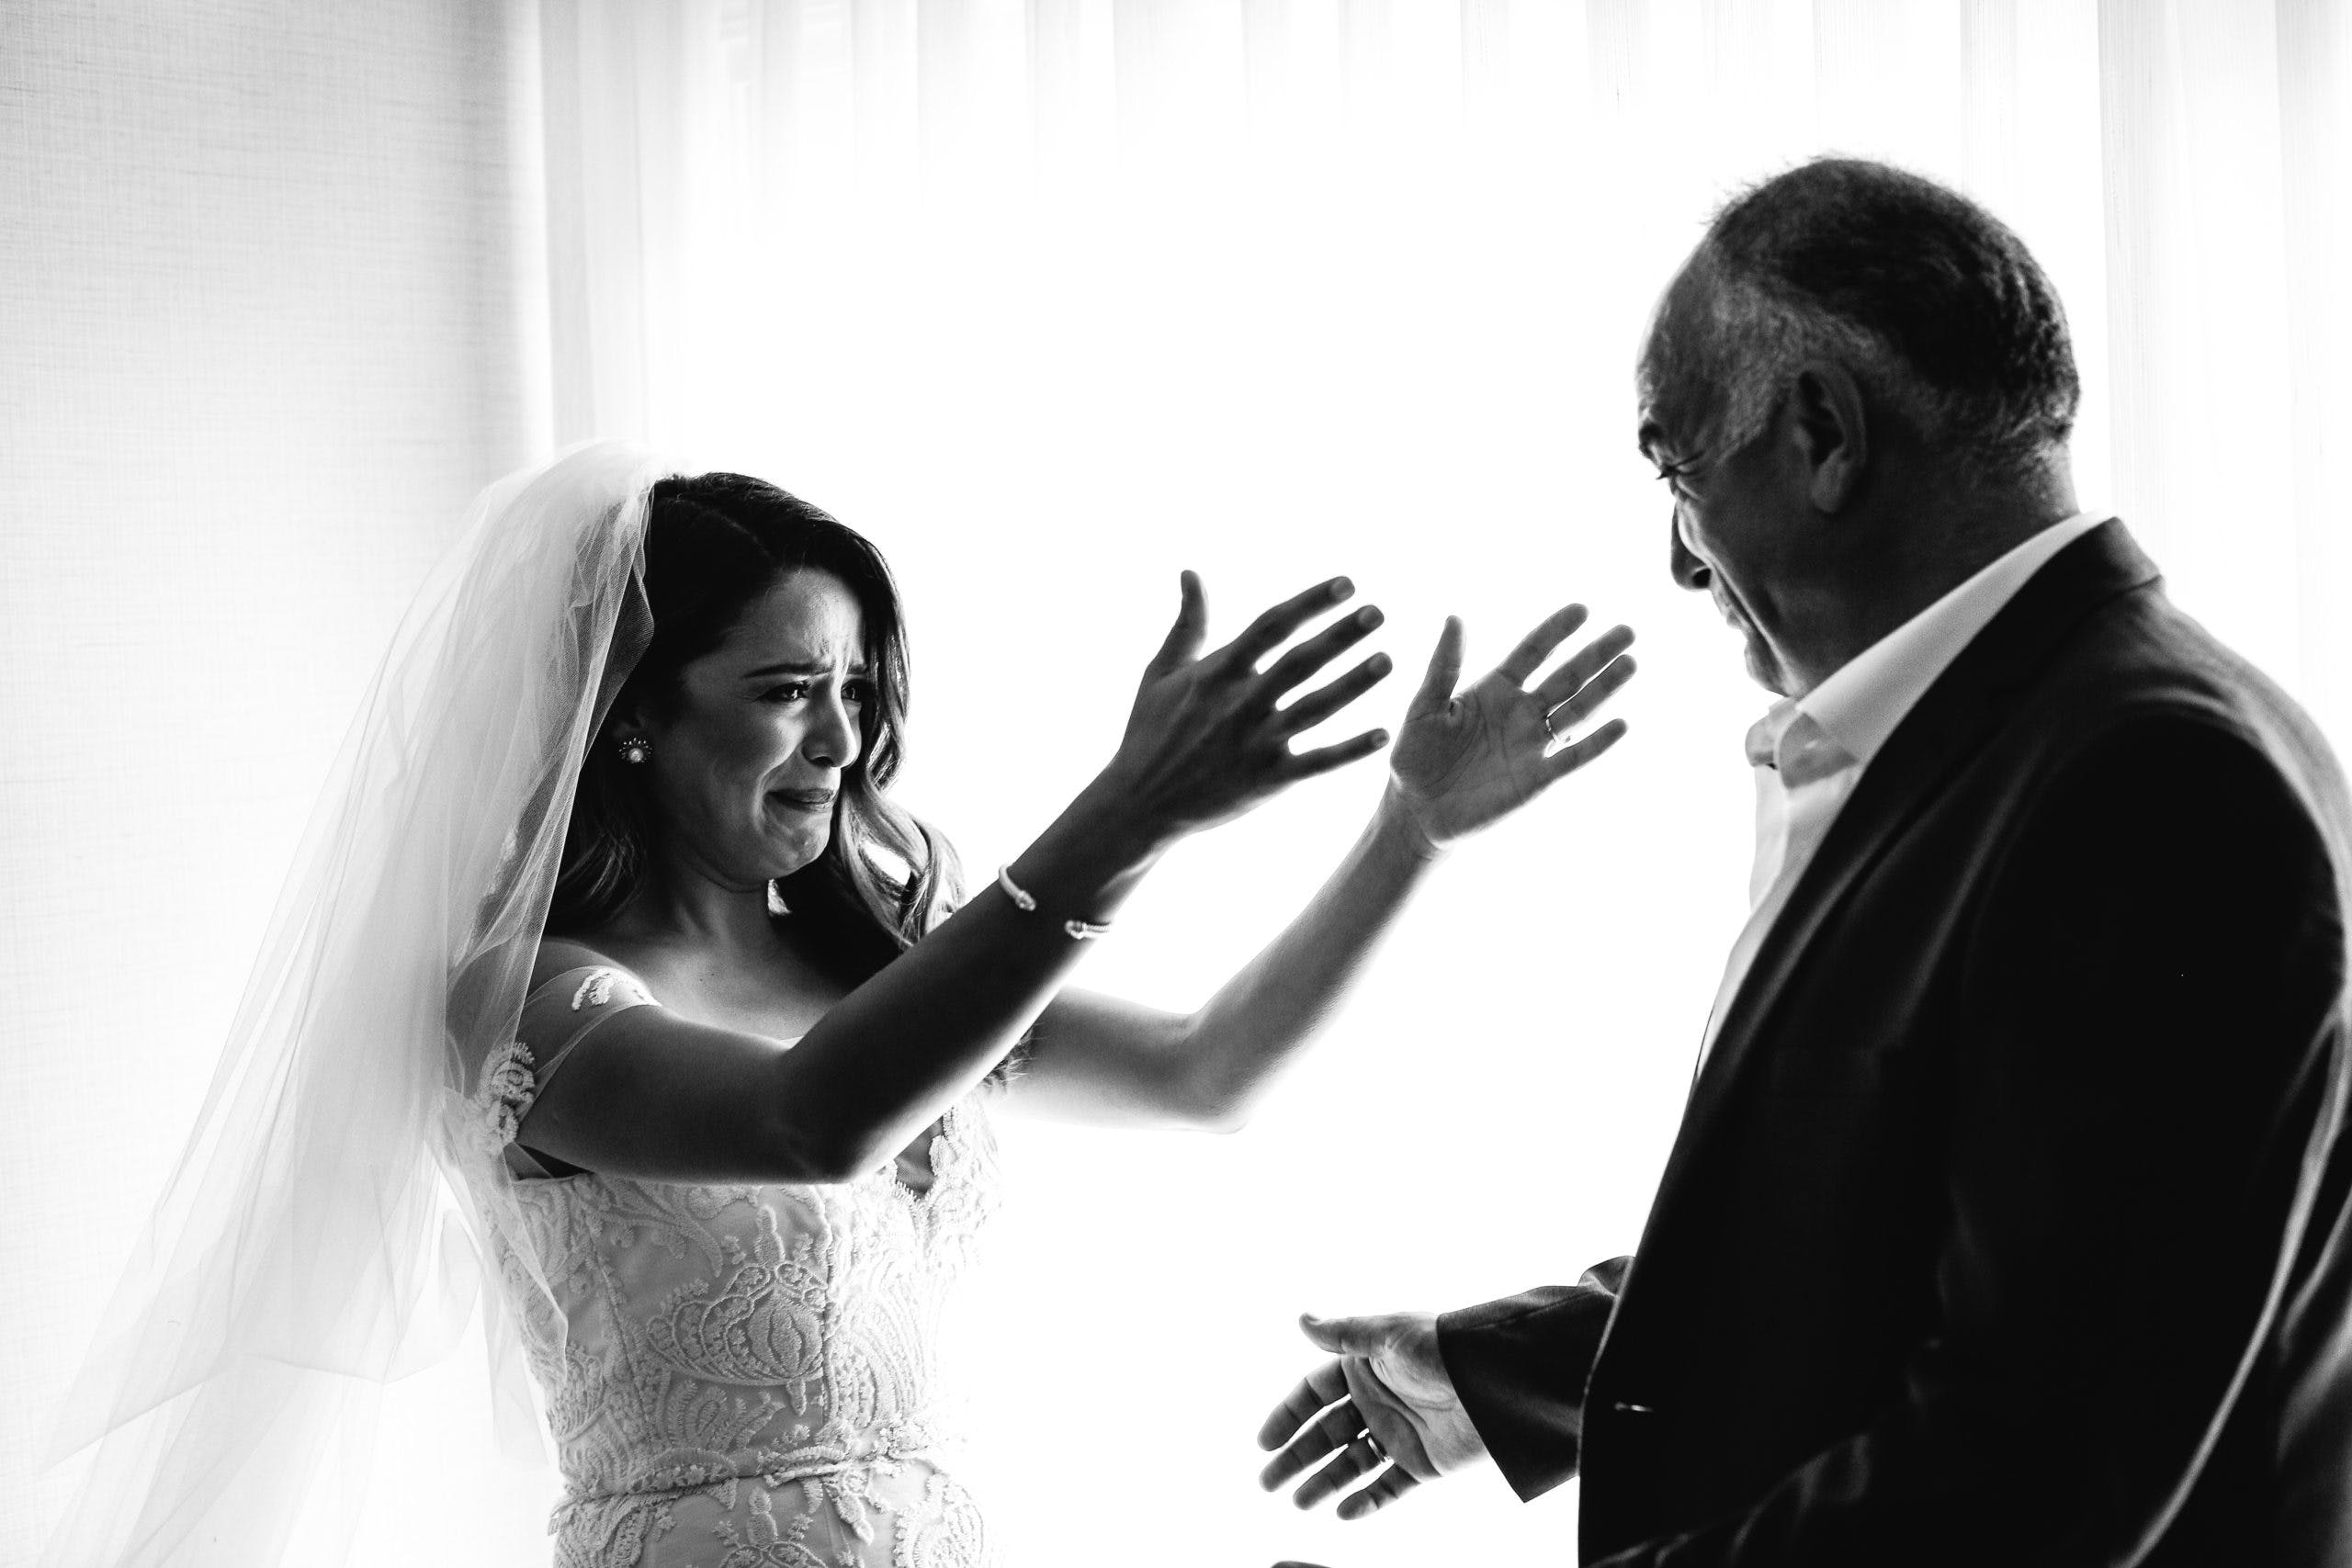 Dad seeing bride for first time, both have tears in their eyes   PartySlate